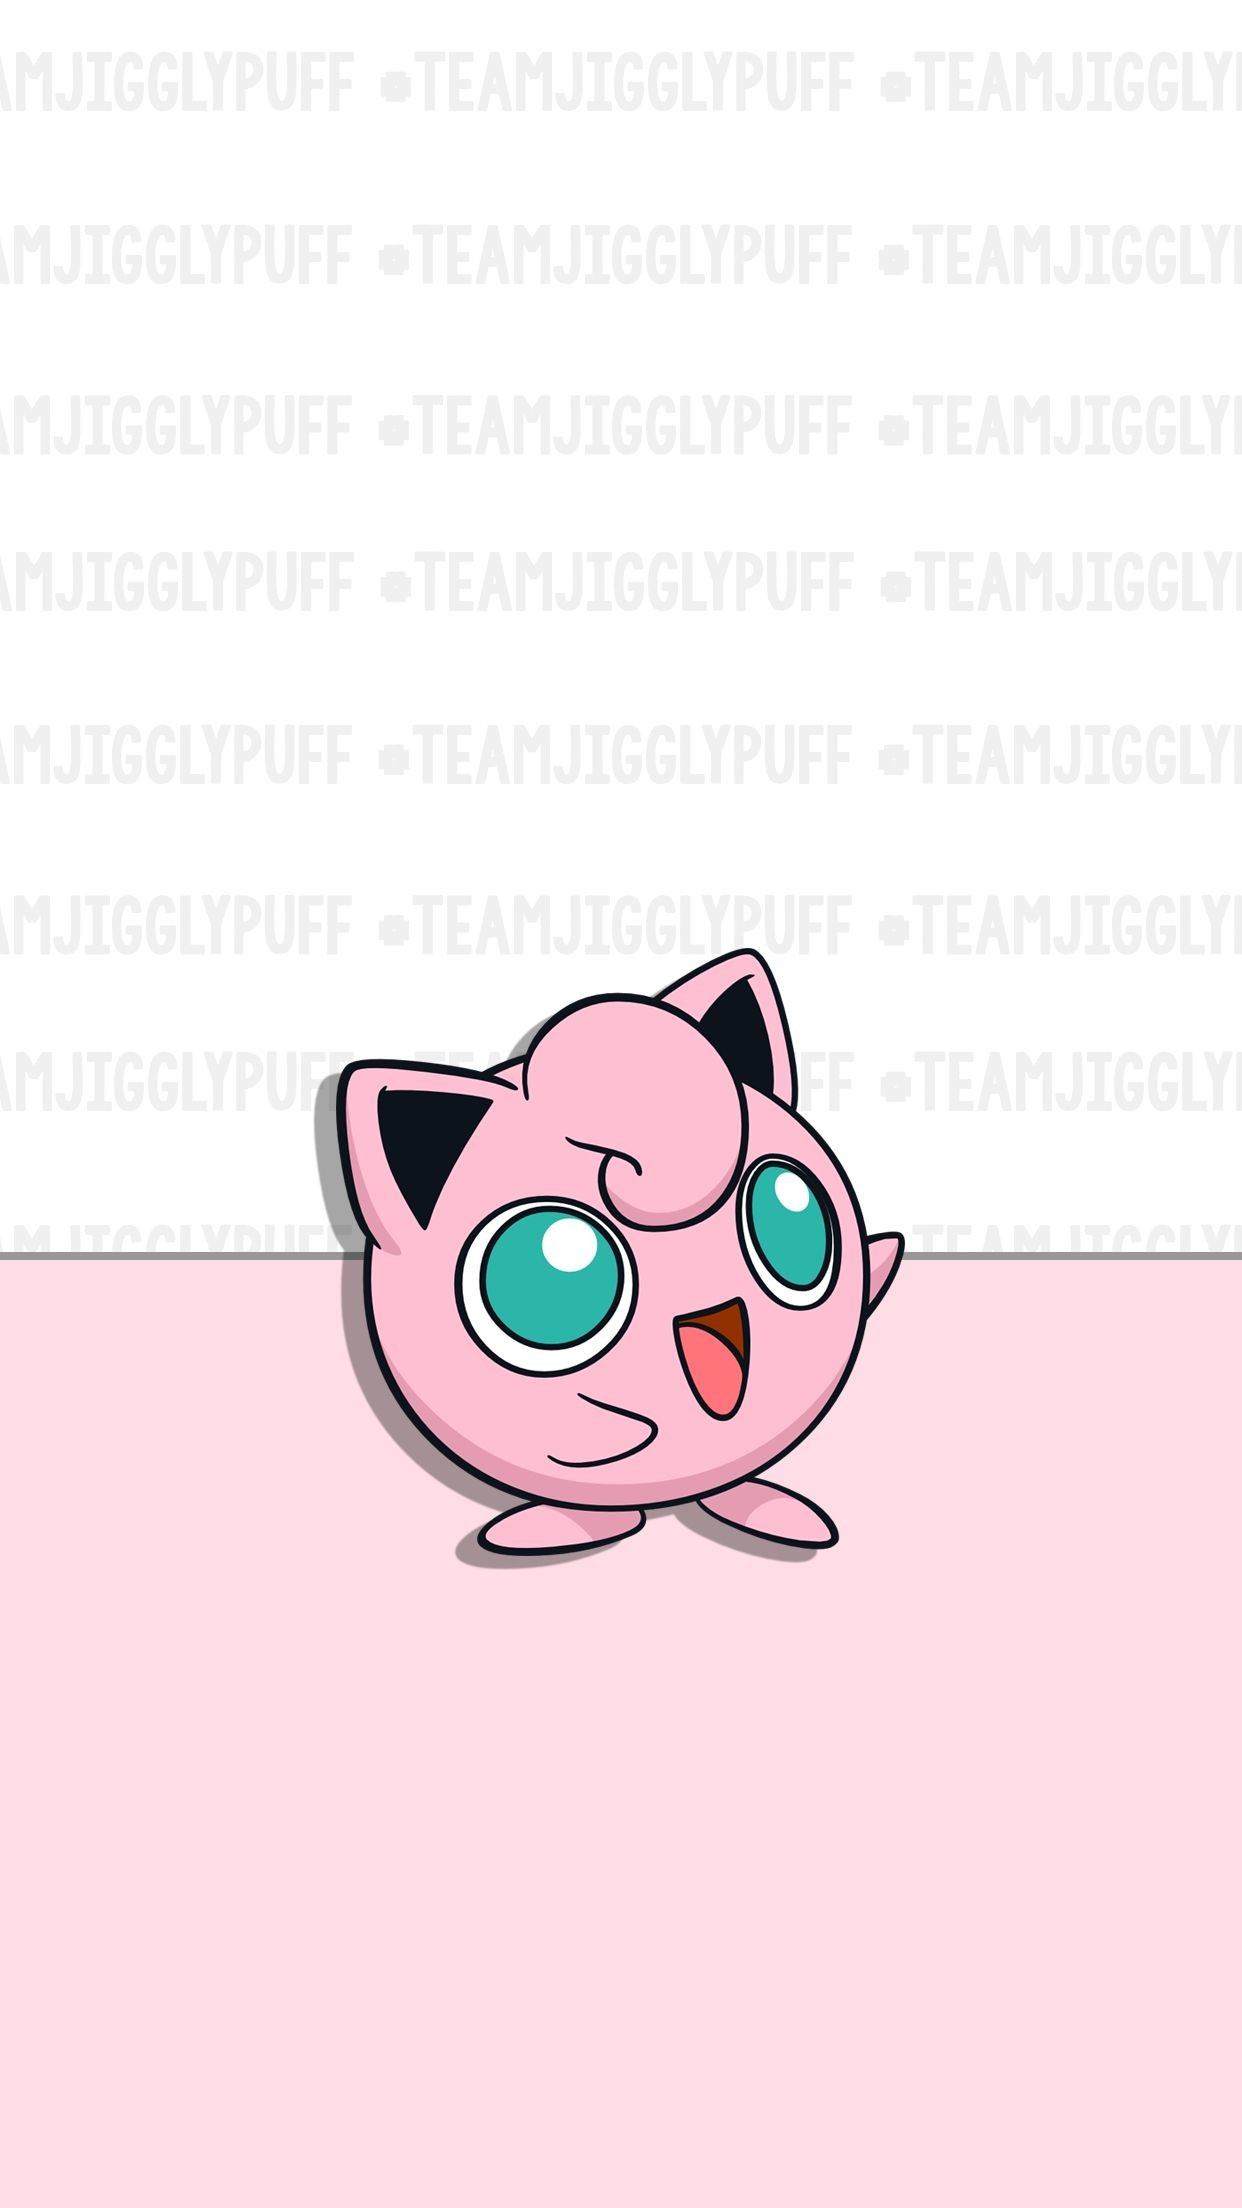 1242x2208 Pokemon, Pokemon Go, pink, wallpaper, hd, cute, background, iPhone,  jigglypuff, jiggly puff